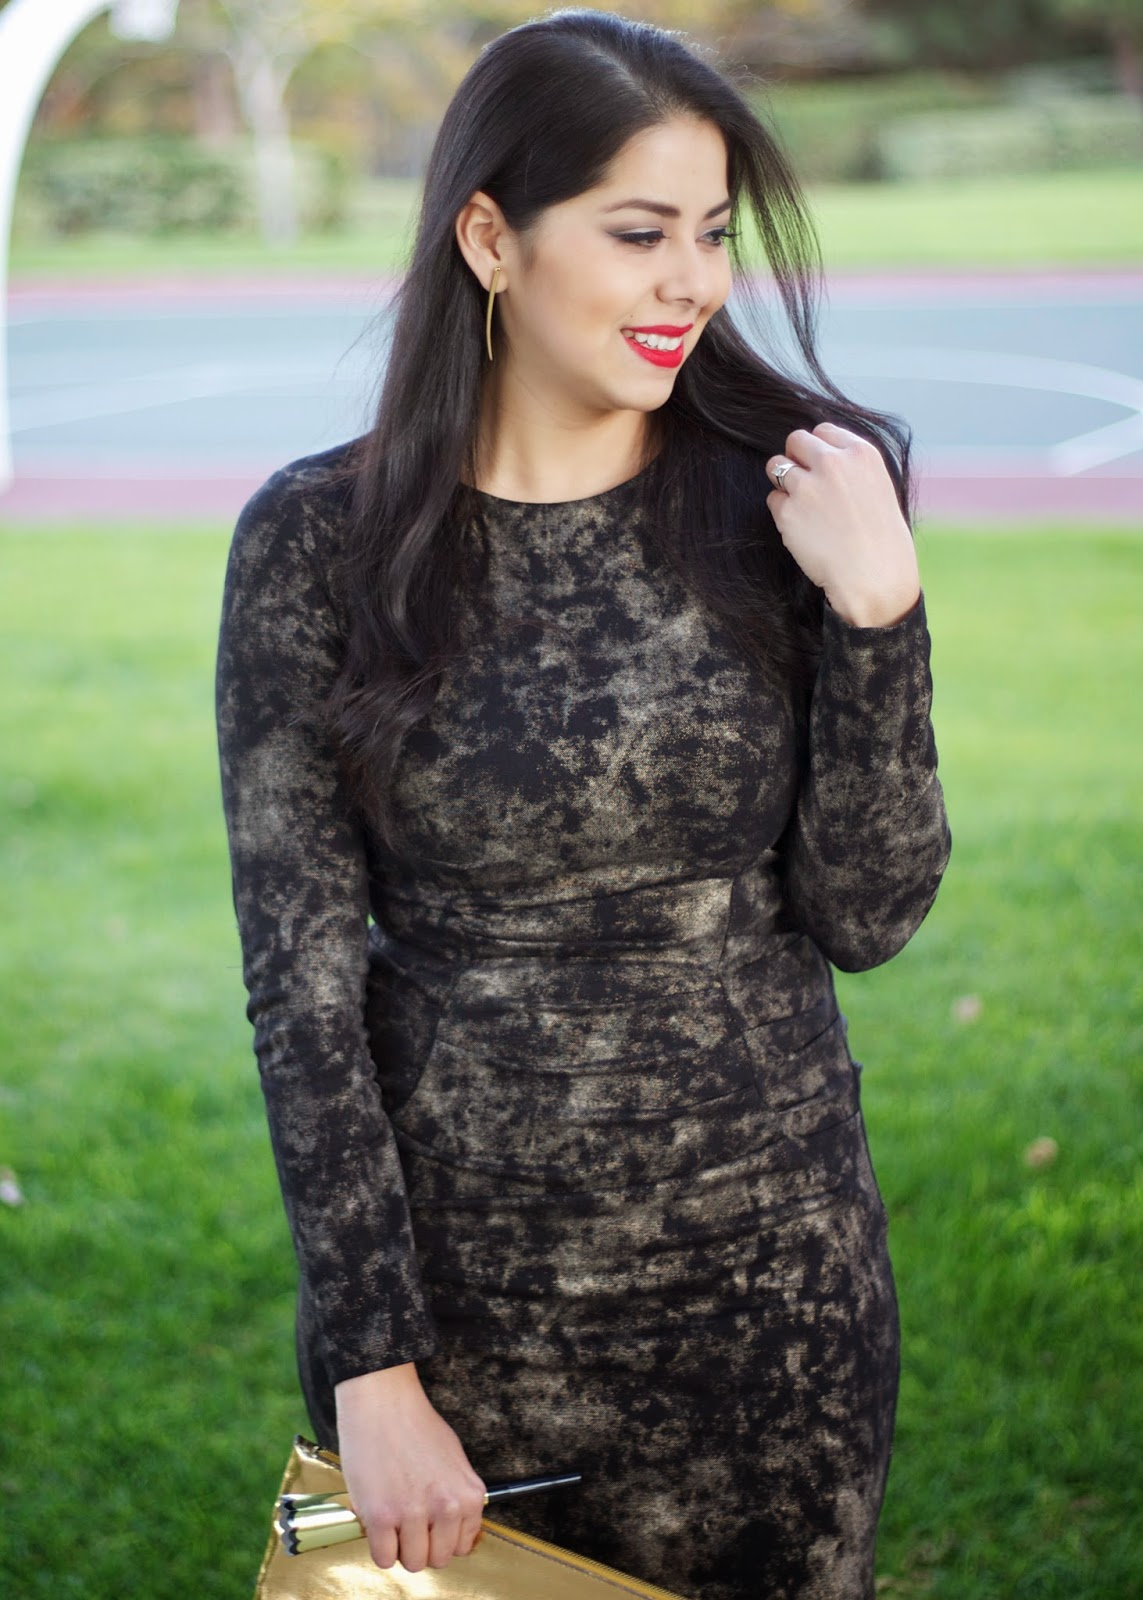 Nicole Miller Dress, Nicole Miller Fashion, NYE Outfit Idea, LBD, little black dress, gold foil dress